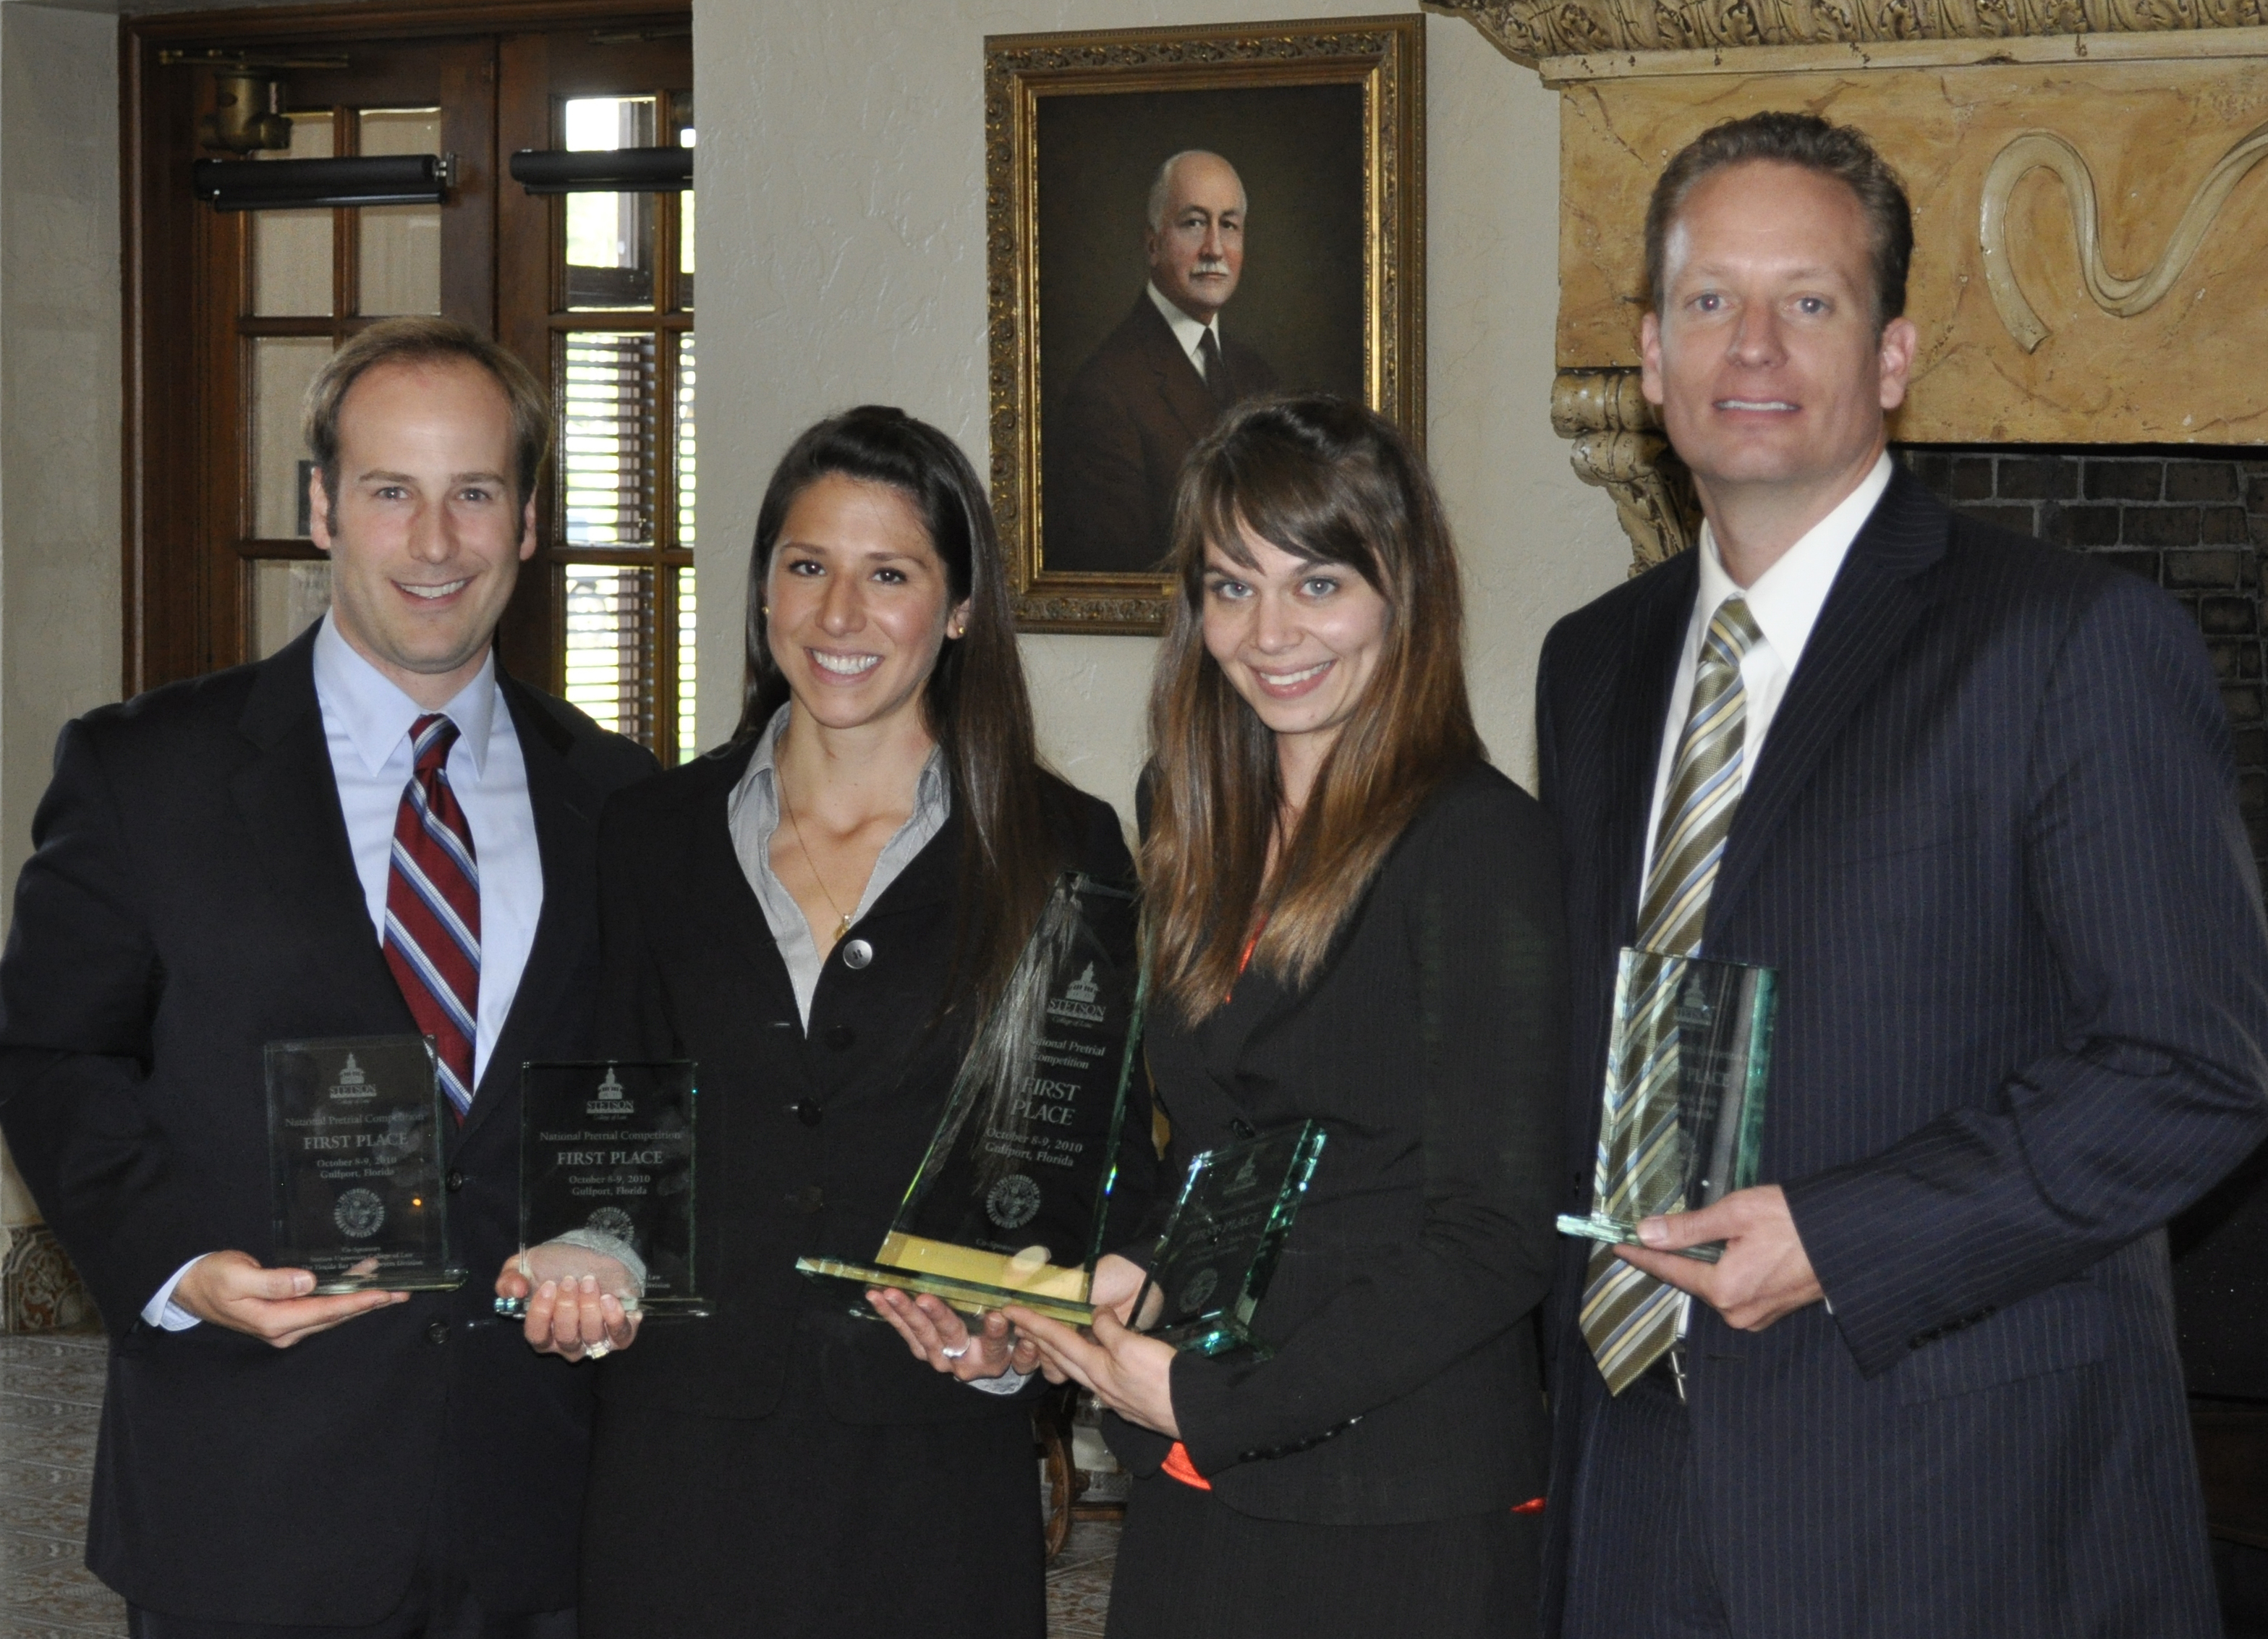 The college of william and mary school of law won the national pretrial competition at stetson